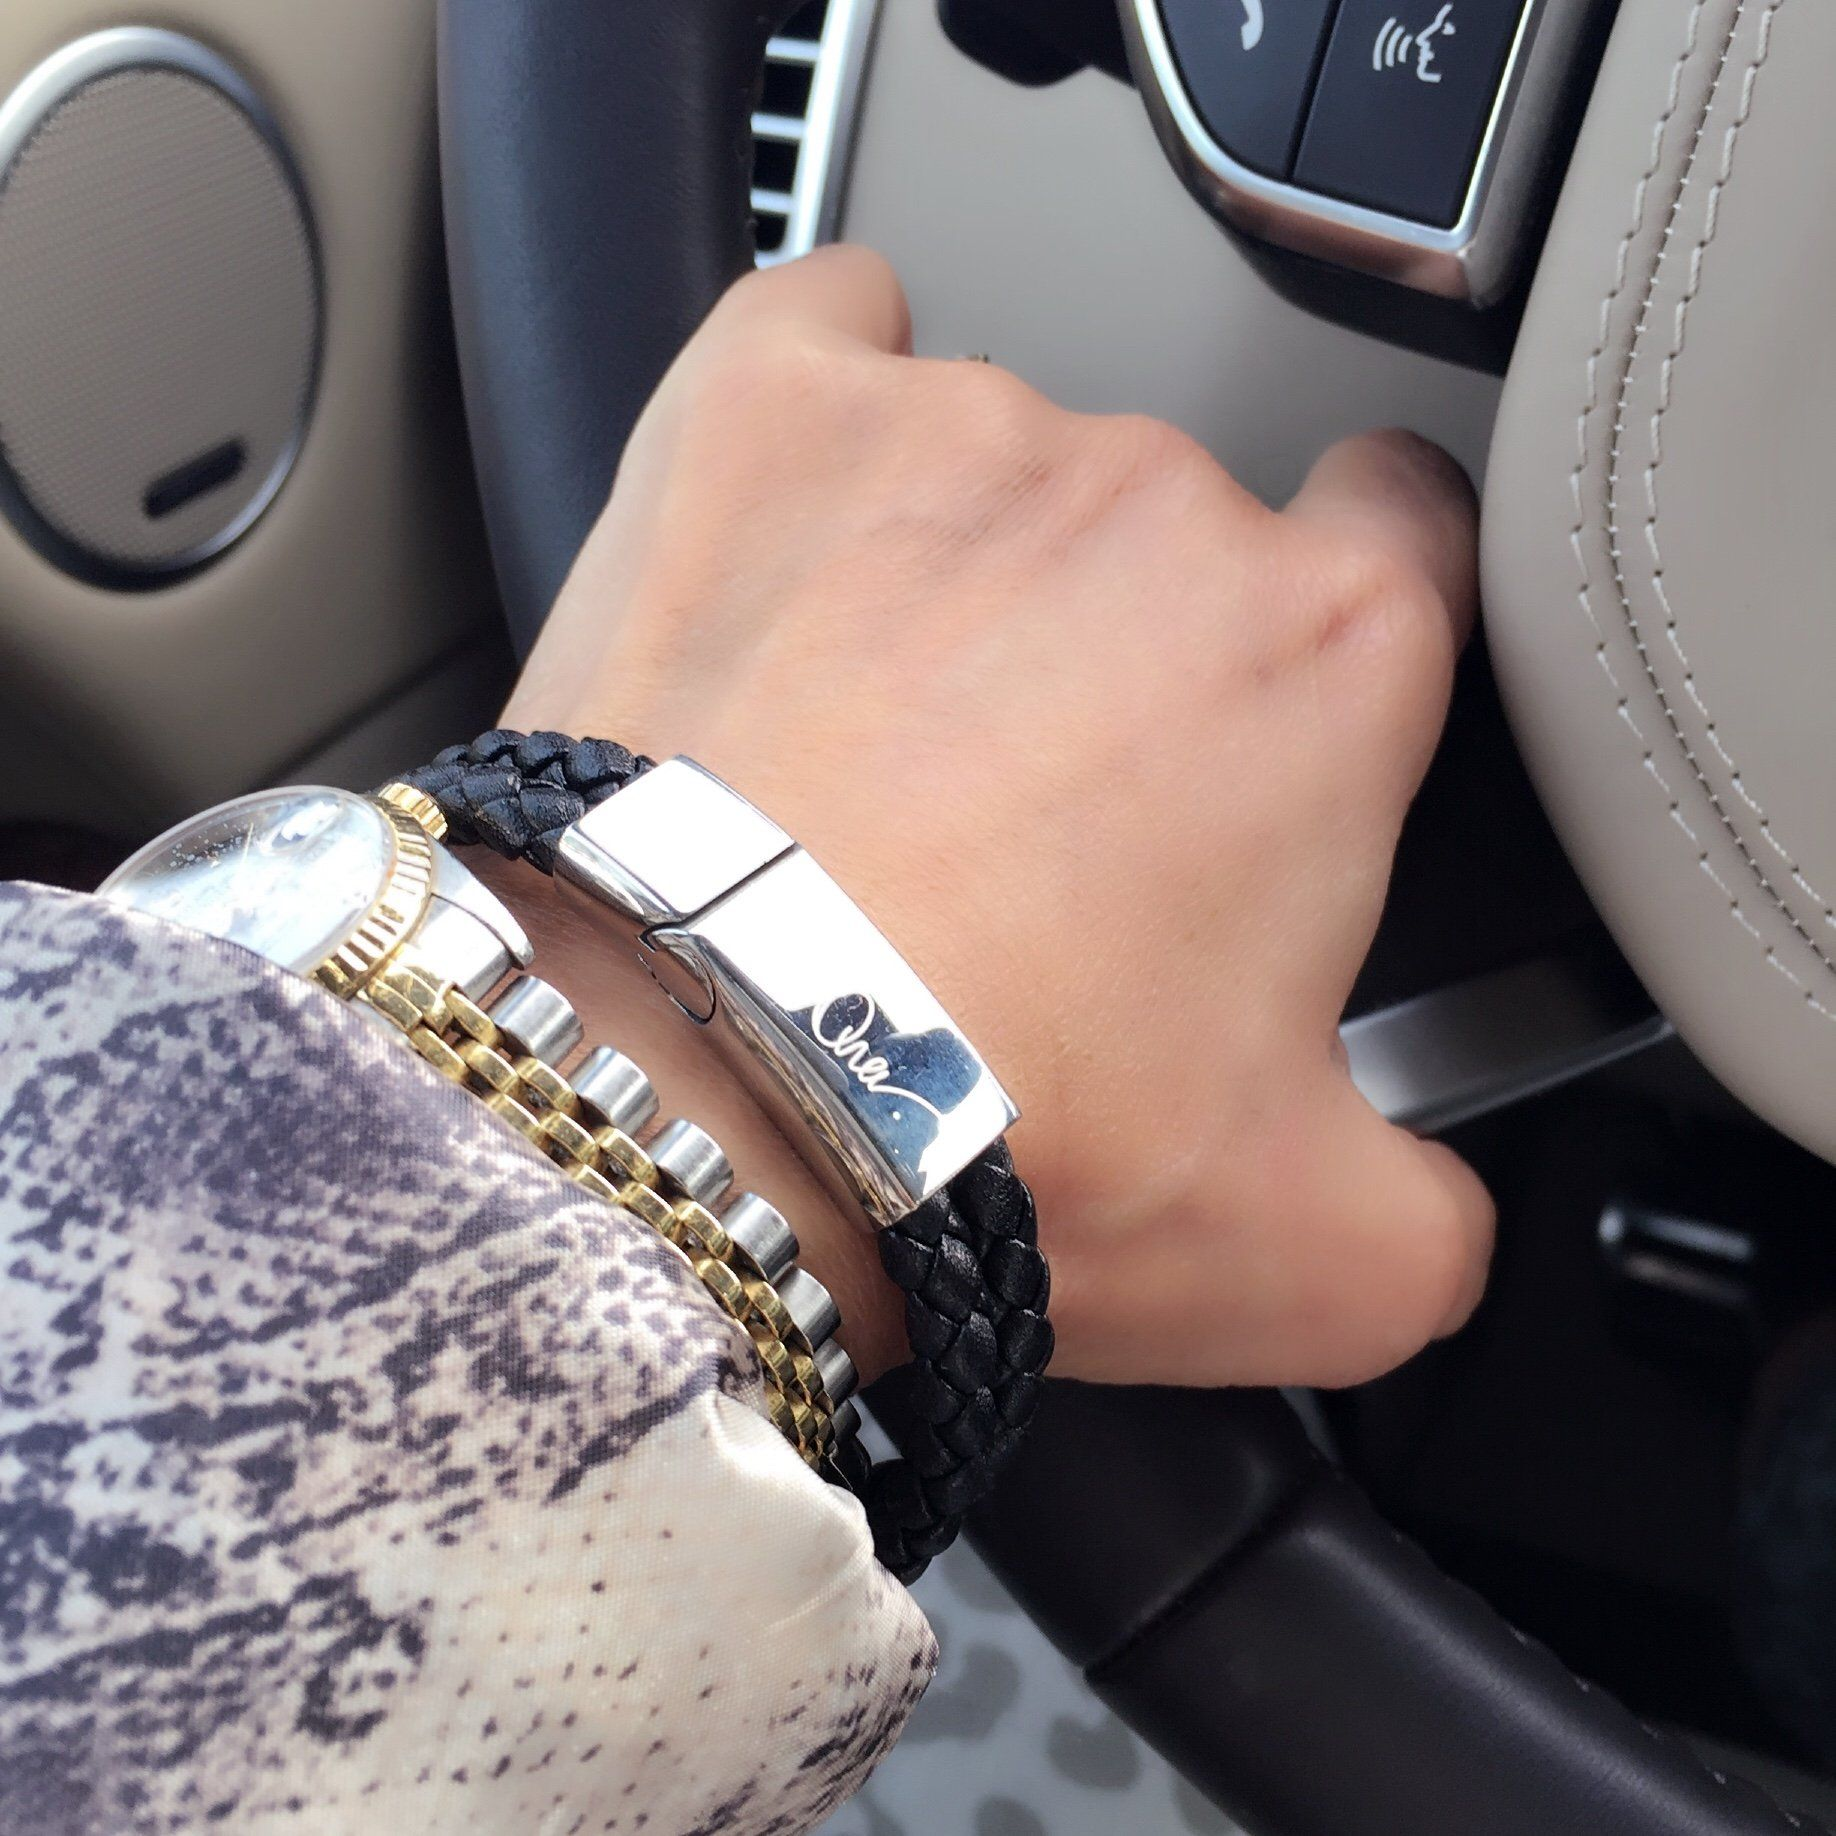 Bracelet - Woman driver wearing Unisex Leather Braided Bracelet With Steel Clasp And Charm